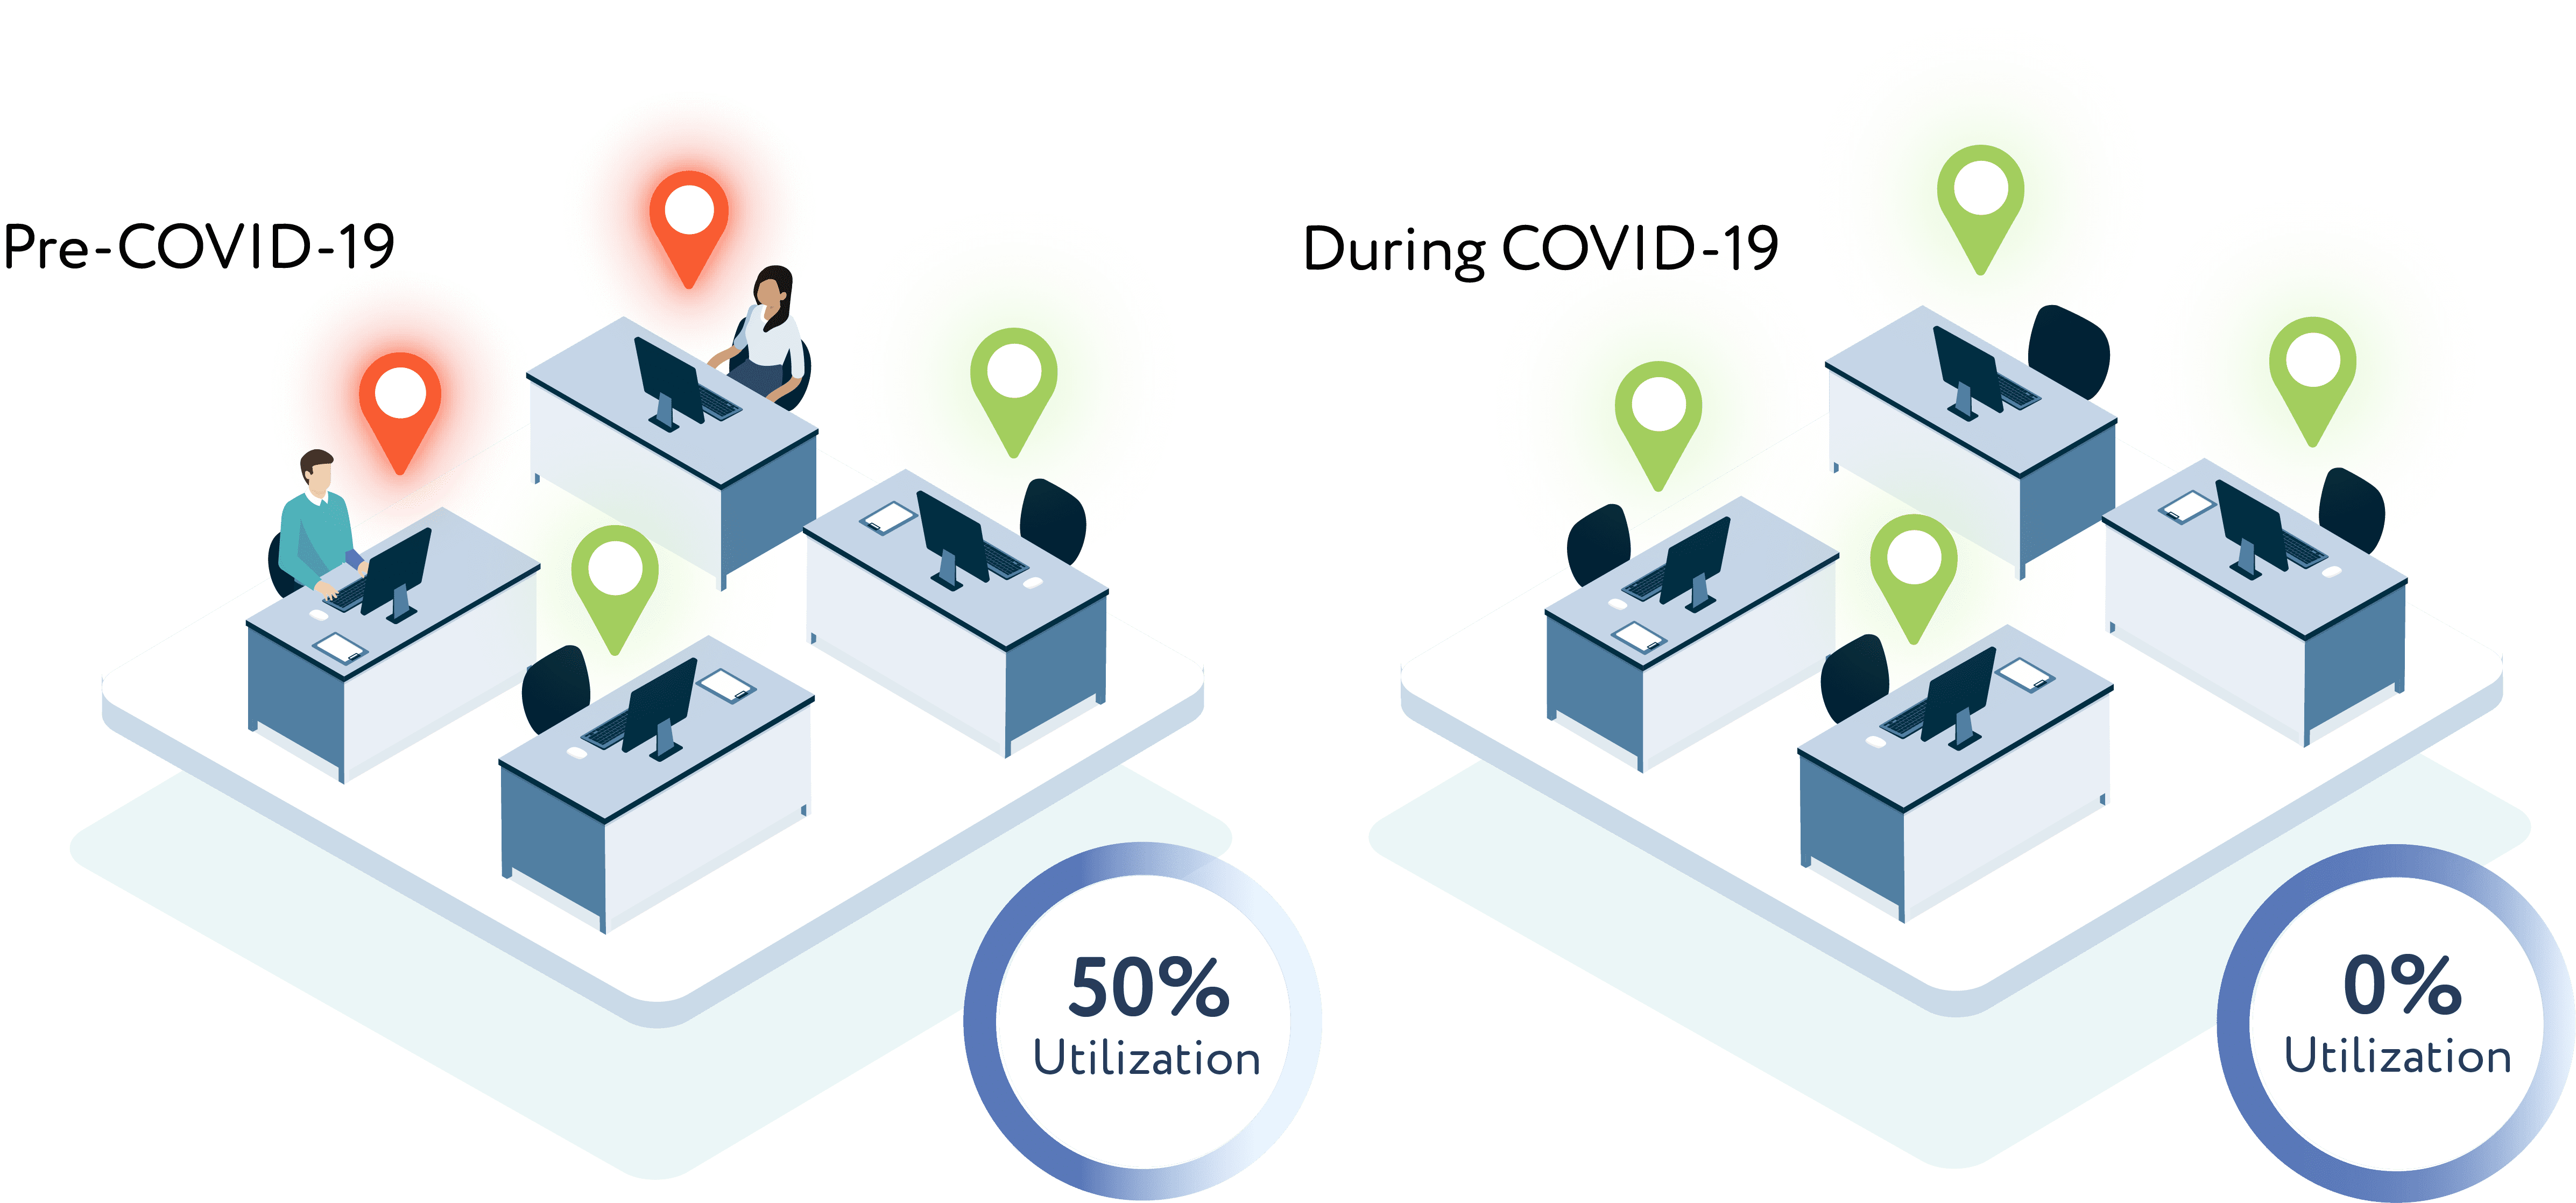 Asset 90 - Do You Know How Coronavirus (COVID-19) Is Impacting Your Facilities Management Strategy?